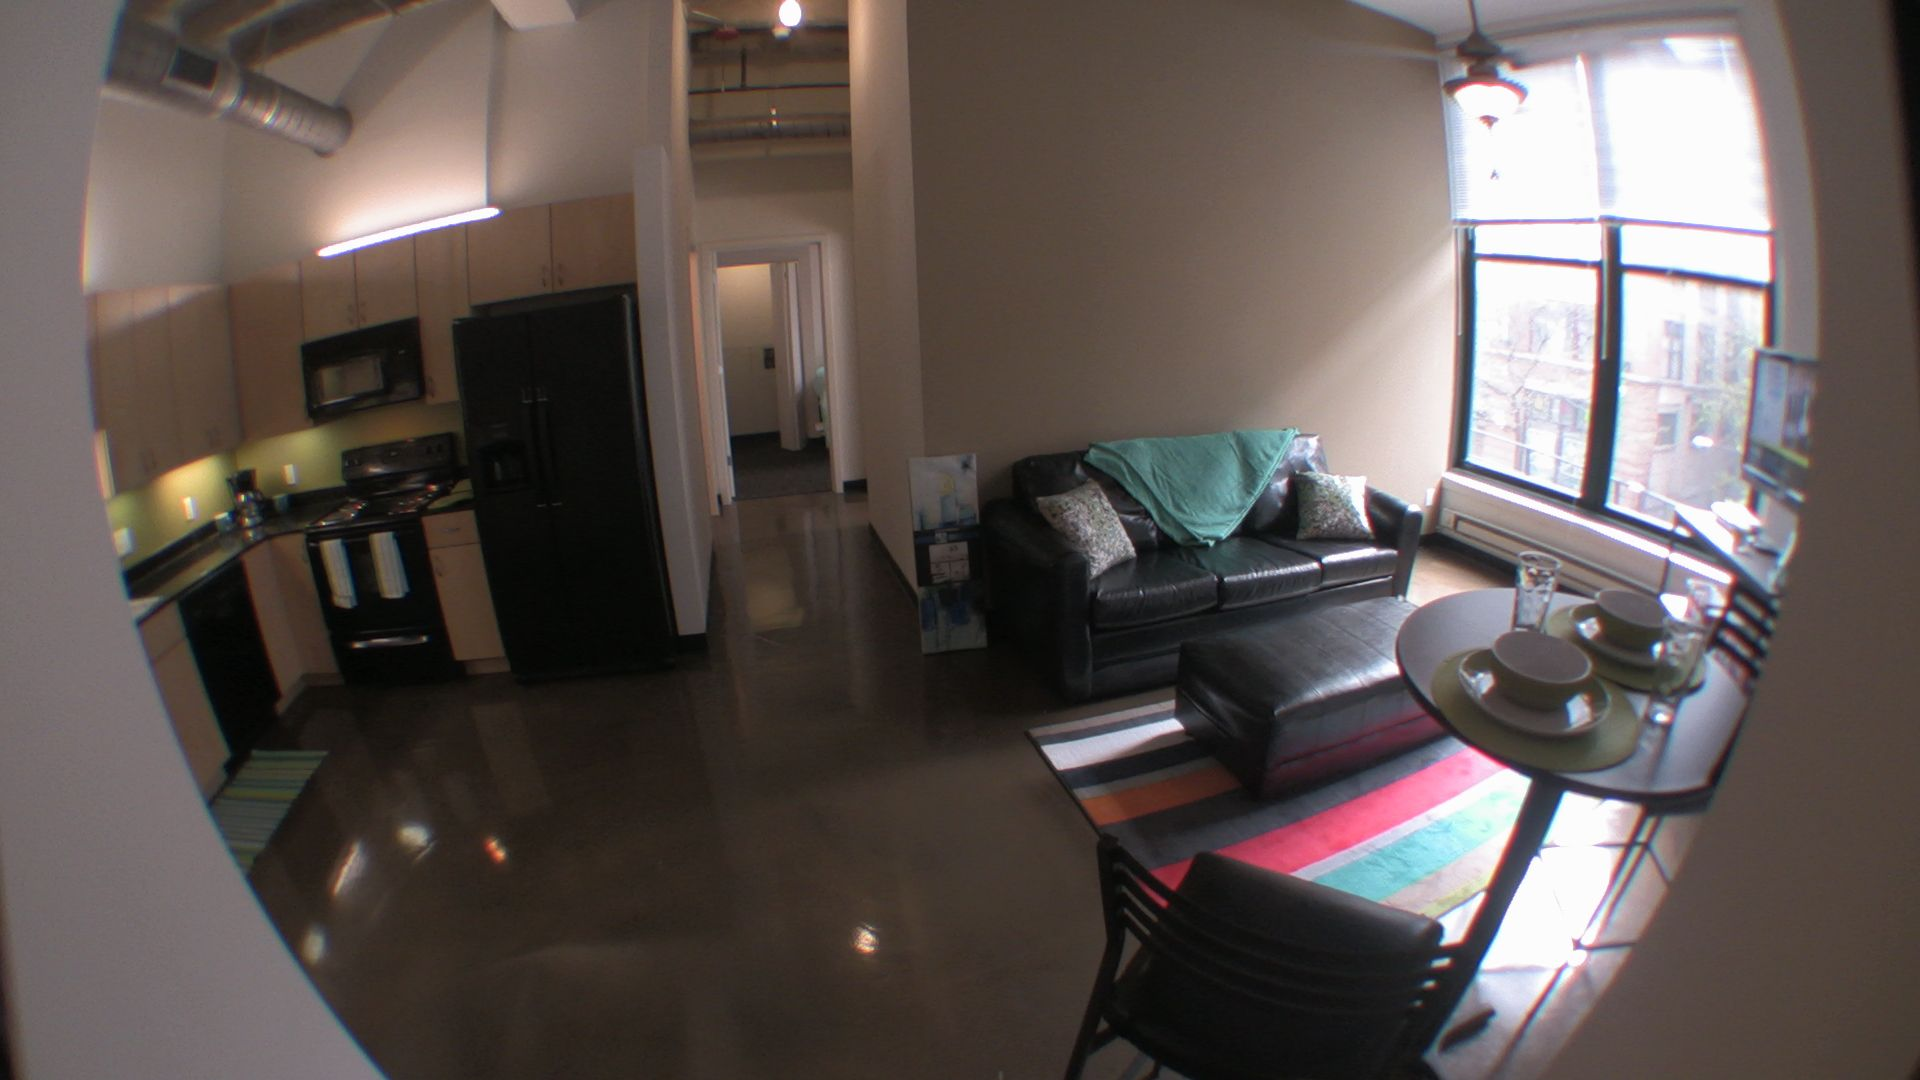 The Madison Loft A 4 Bedroom Bathroom Located In Tailor Lofts At 315 S Peoria St Chicago Il 60607 Fully Furnished Individual Leases